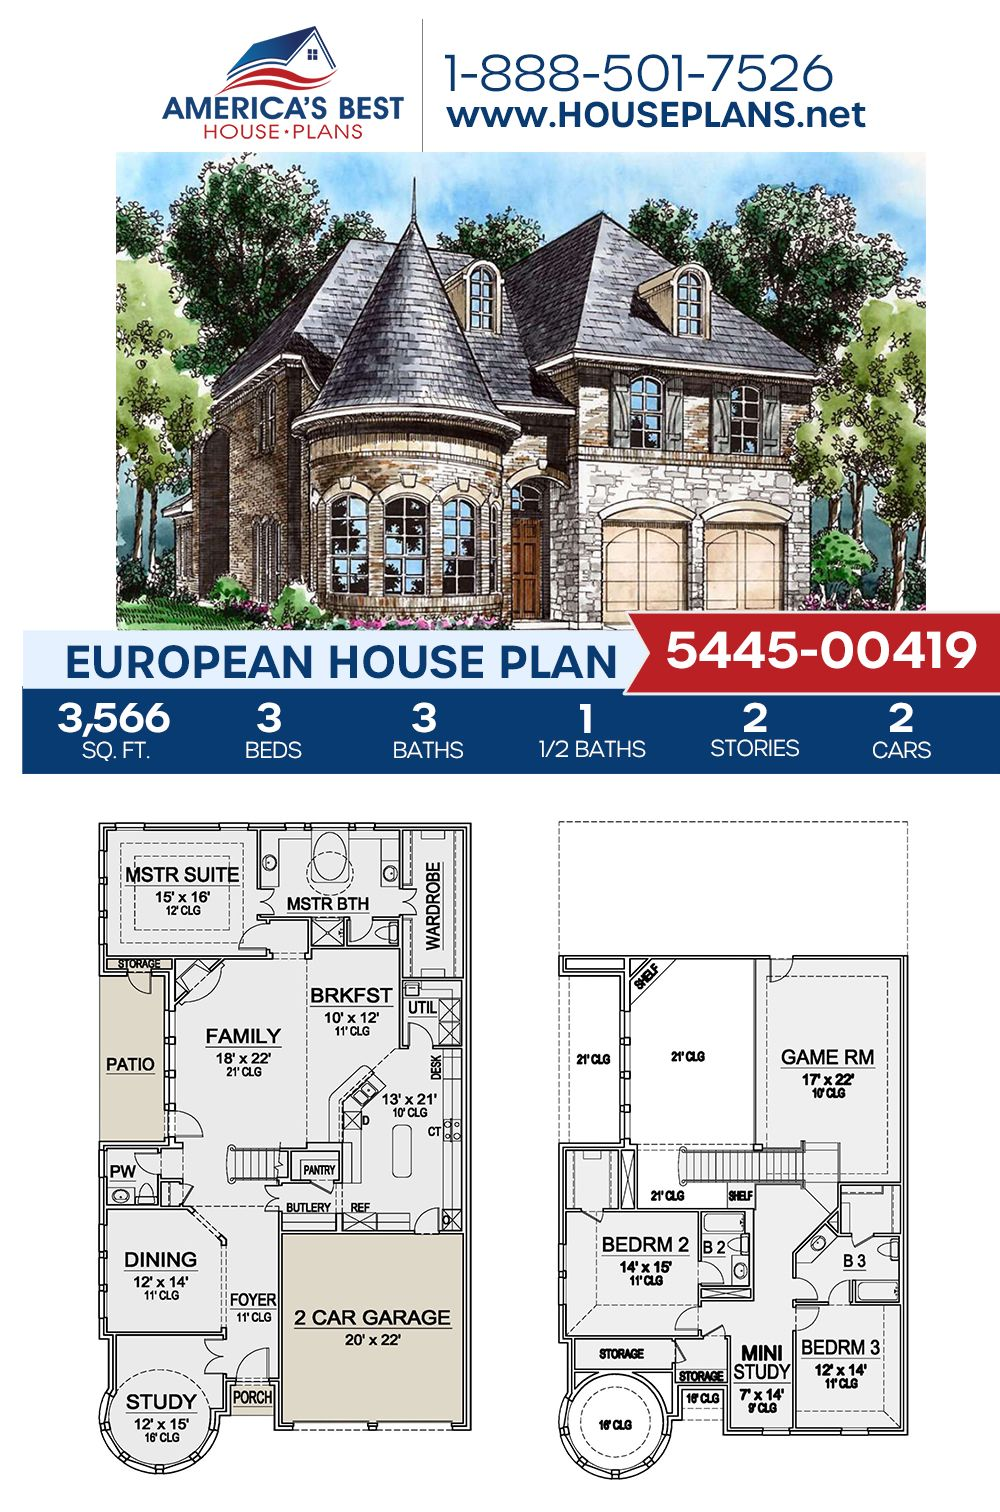 House Plan 5445 00419 French Country Plan 3 566 Square Feet 3 Bedrooms 3 5 Bathrooms In 2021 Mansion Floor Plan House Blueprints Vintage House Plans